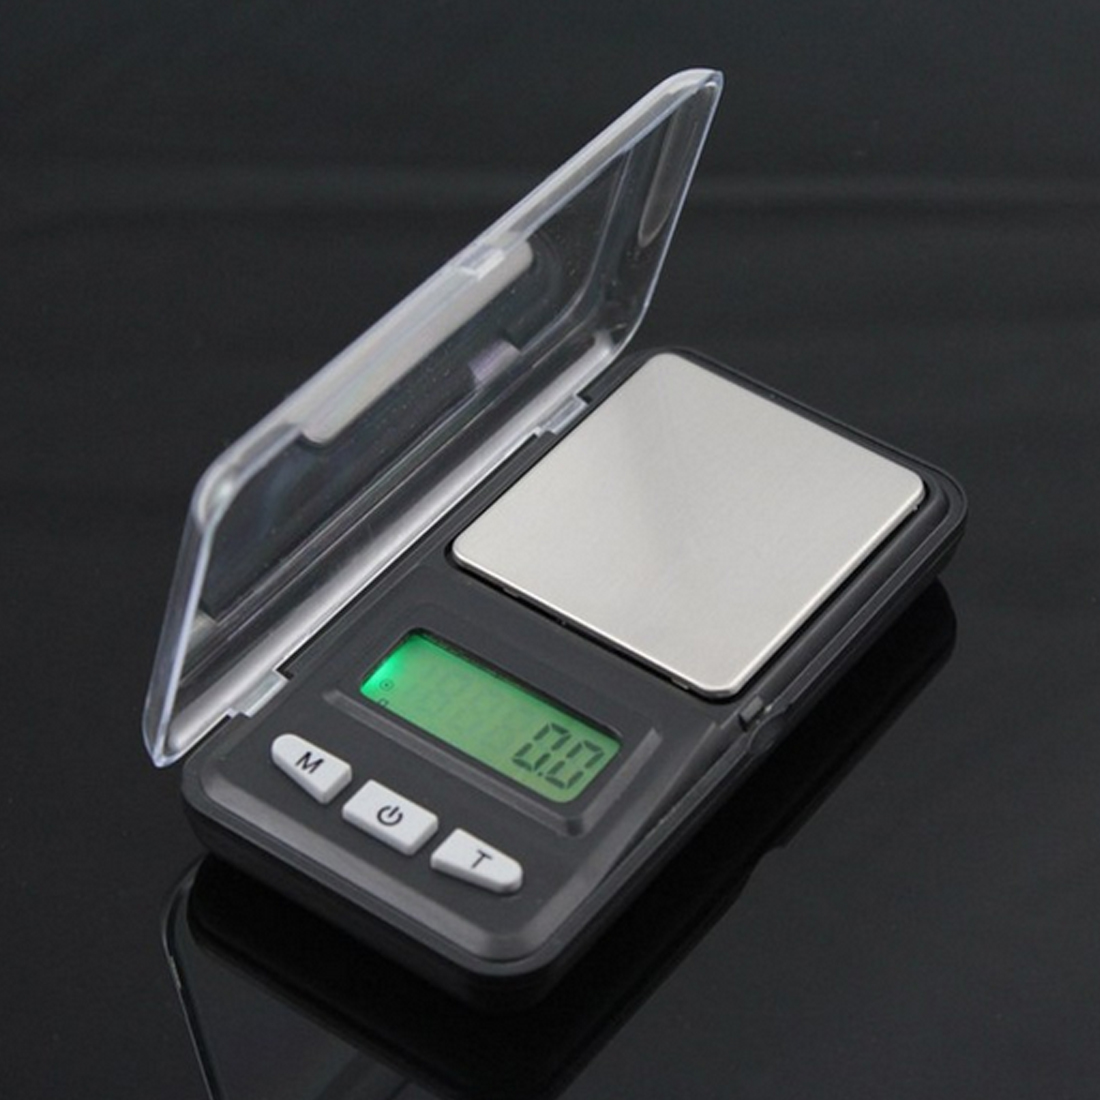 0.01g 200g Pocket Digital Scale Mini Digital Scale Tool Jewelry Gold Balance Weight Gram Green Back-light LCD Display